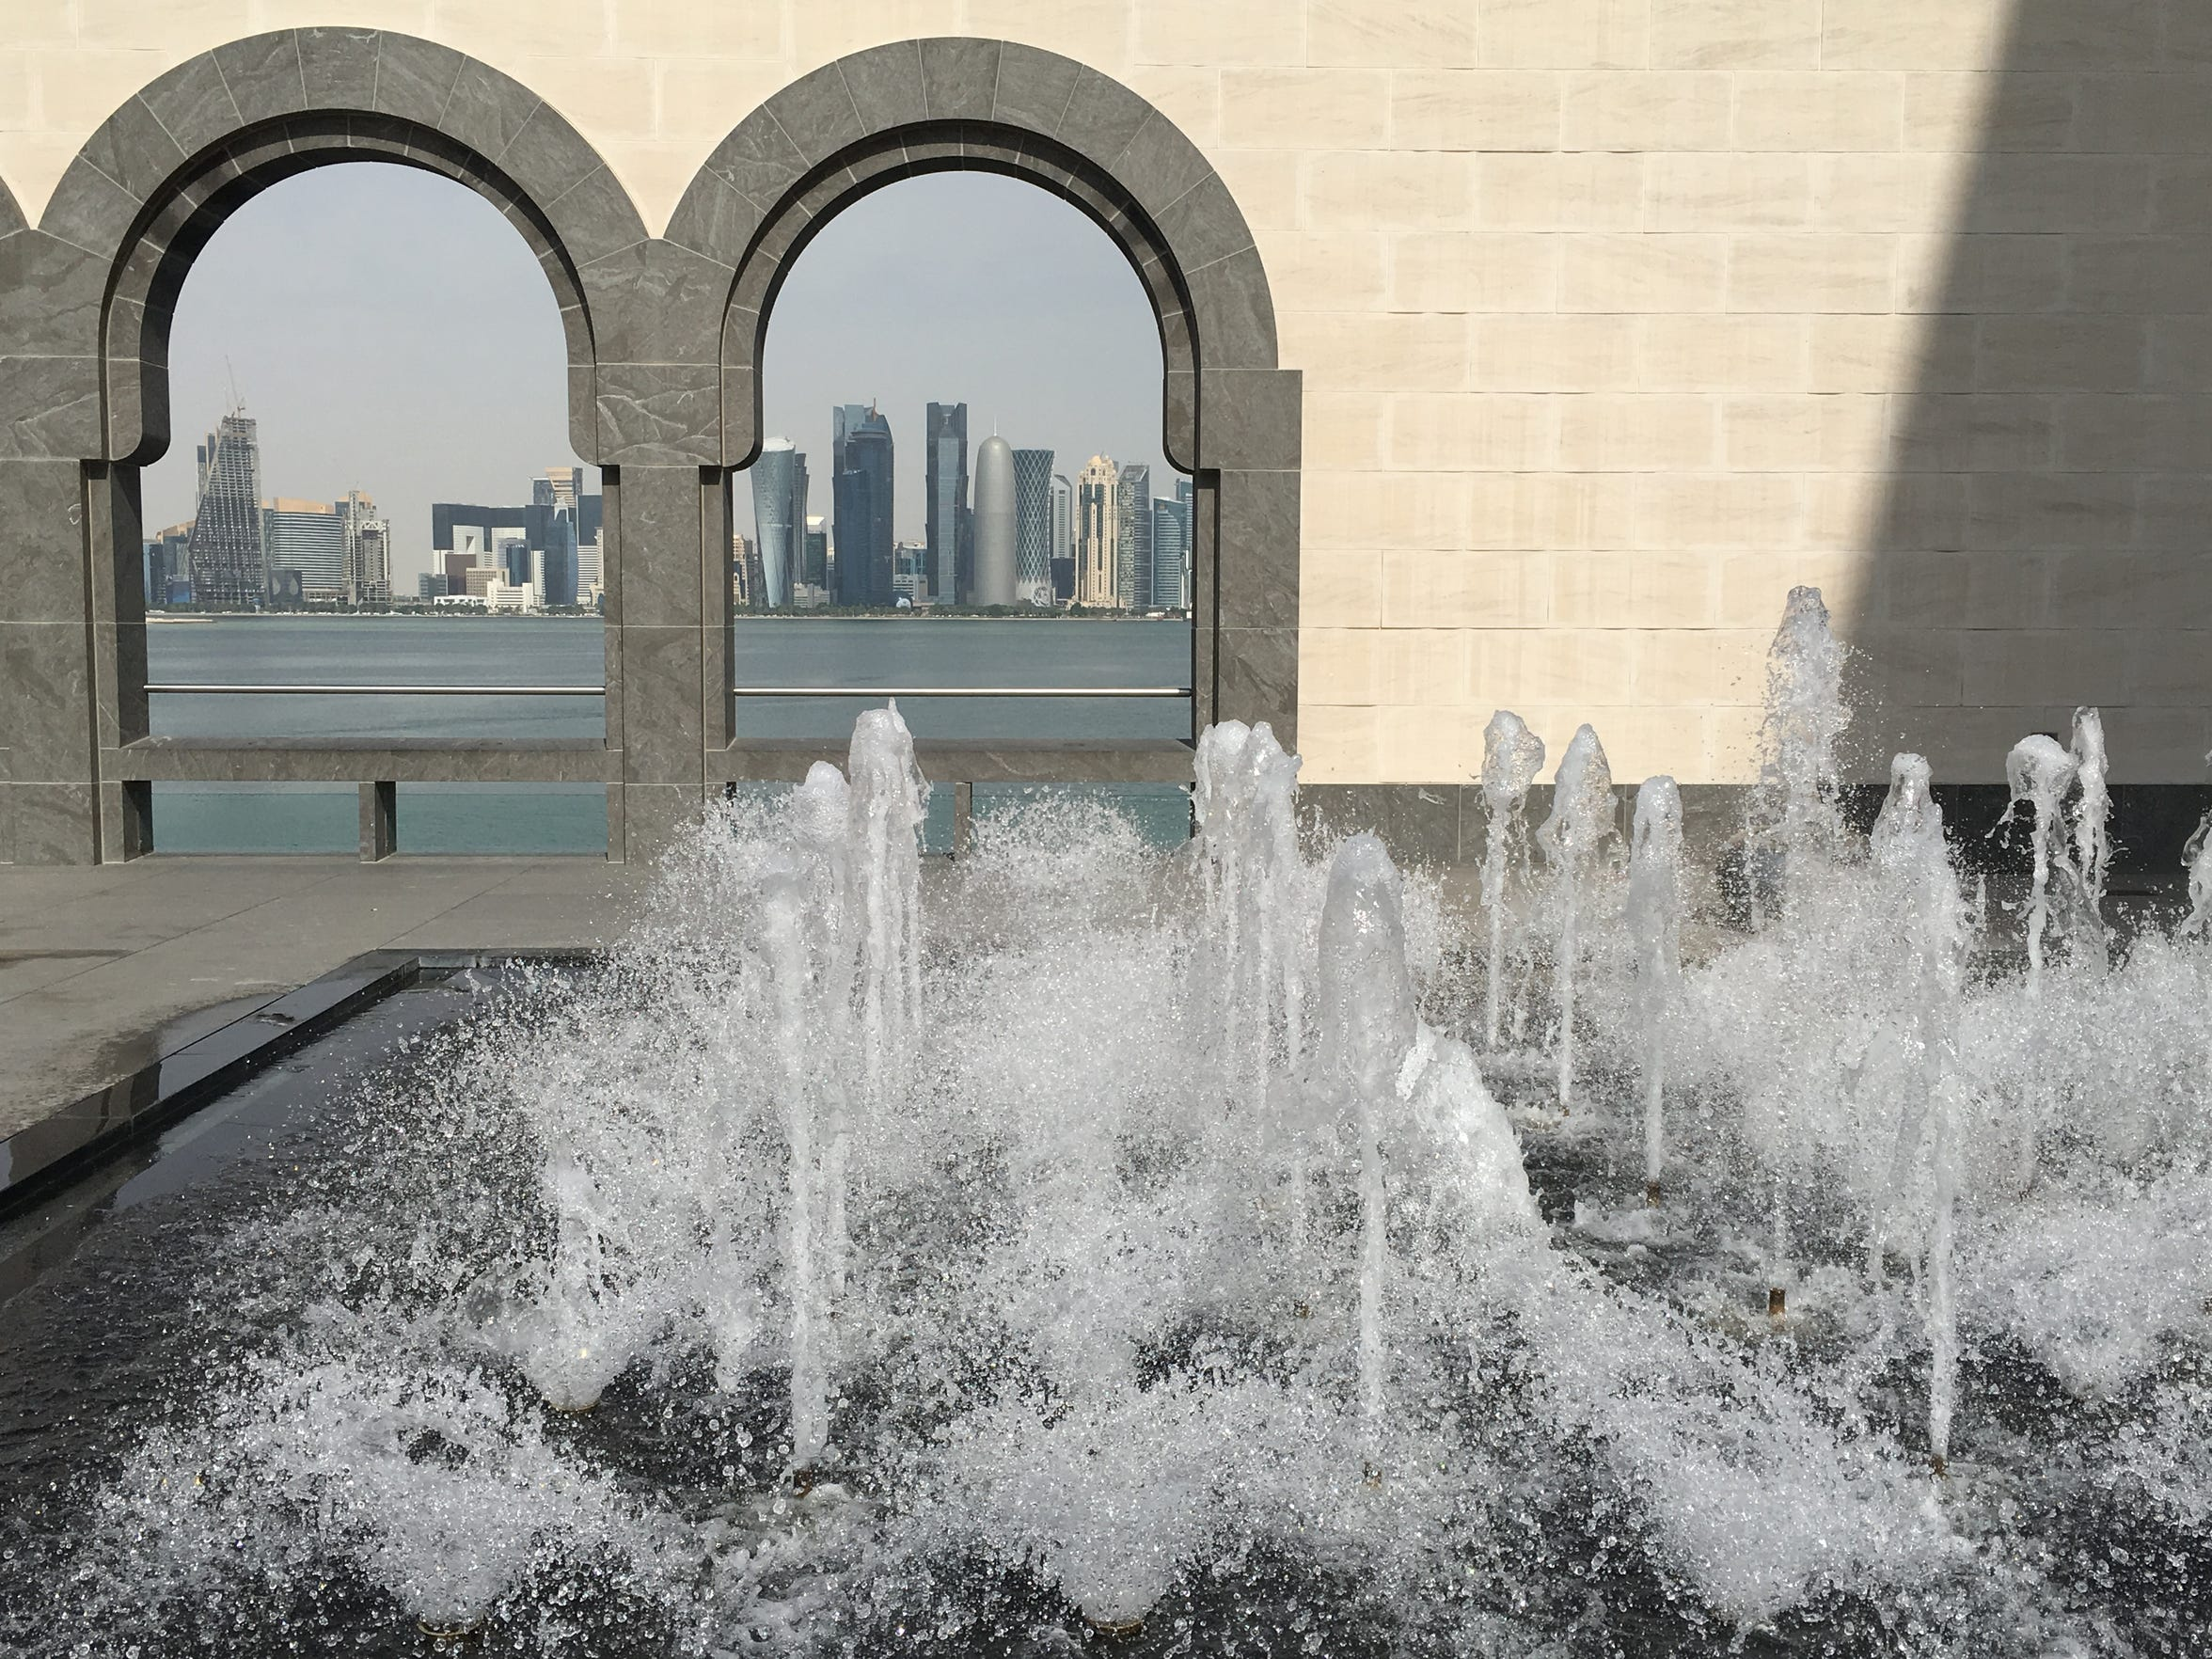 A fountain flows at the Museum of Islamic Art in Doha, Qatar, with the city skyline in the background. Doha has grown rapidly during the past two decades and relies on desalinated water.